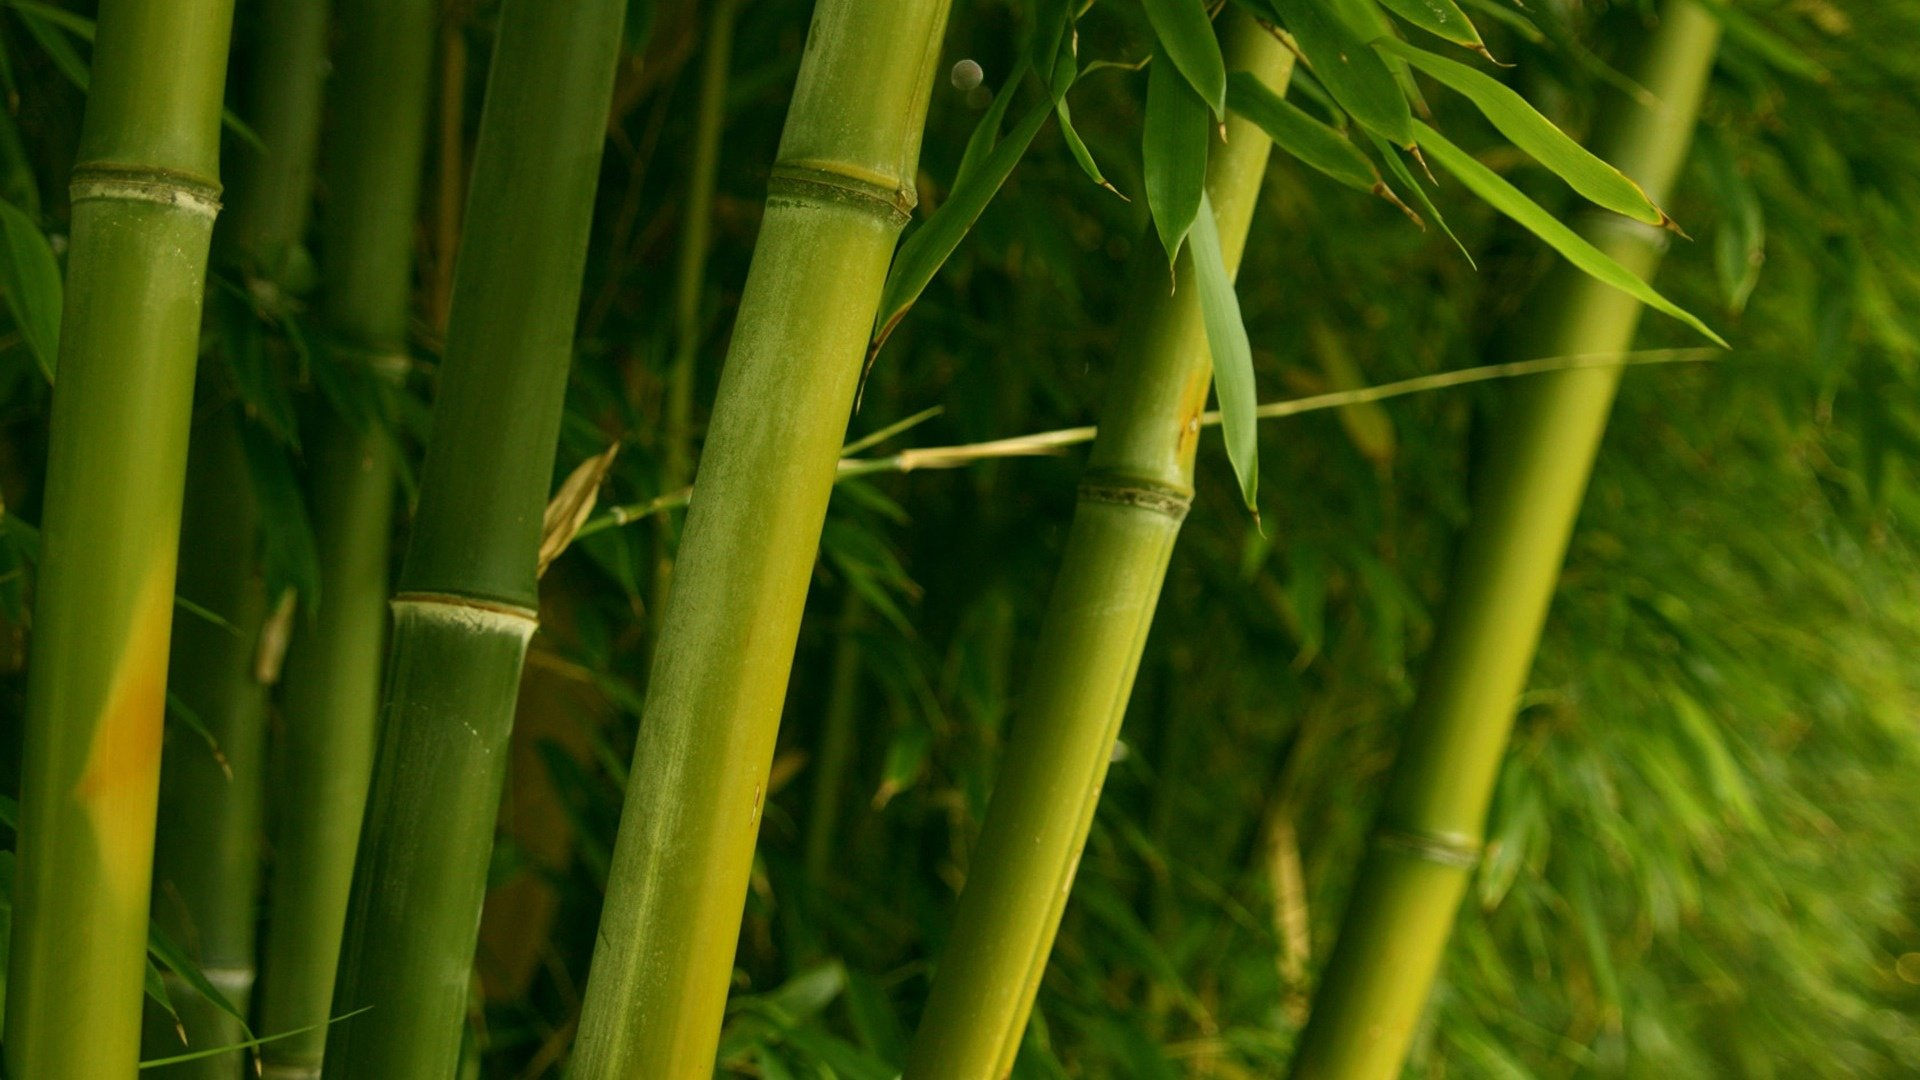 Download full hd Bamboo PC background ID:246859 for free